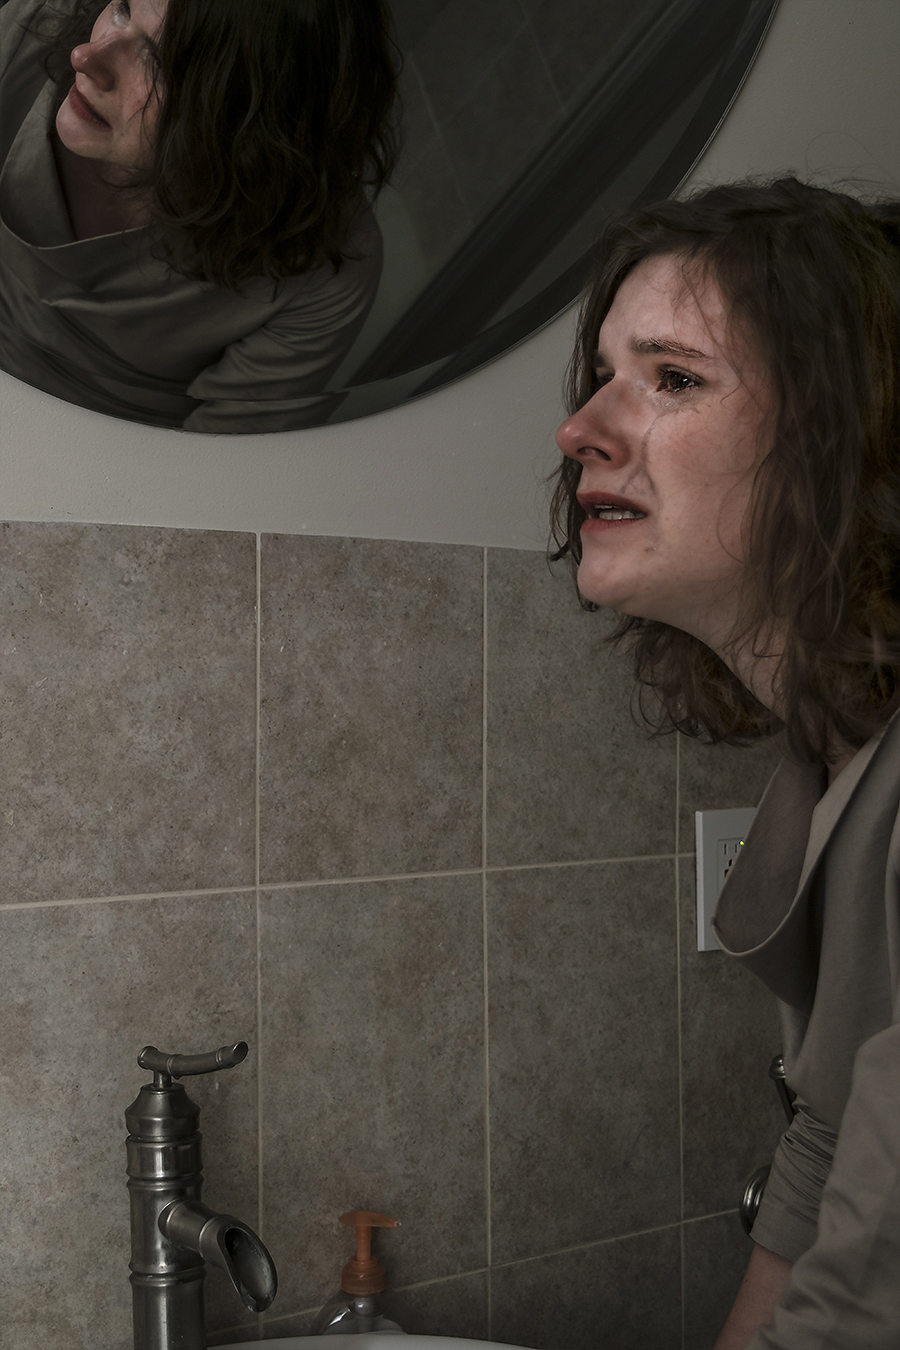 Leniqueca_Welcome_Portraiture_Lise_JeSuis_Desolate_Distant_Love_Crying_Reflection_Mirror_Bathroom_weeping_deep_sorrow_love_lost